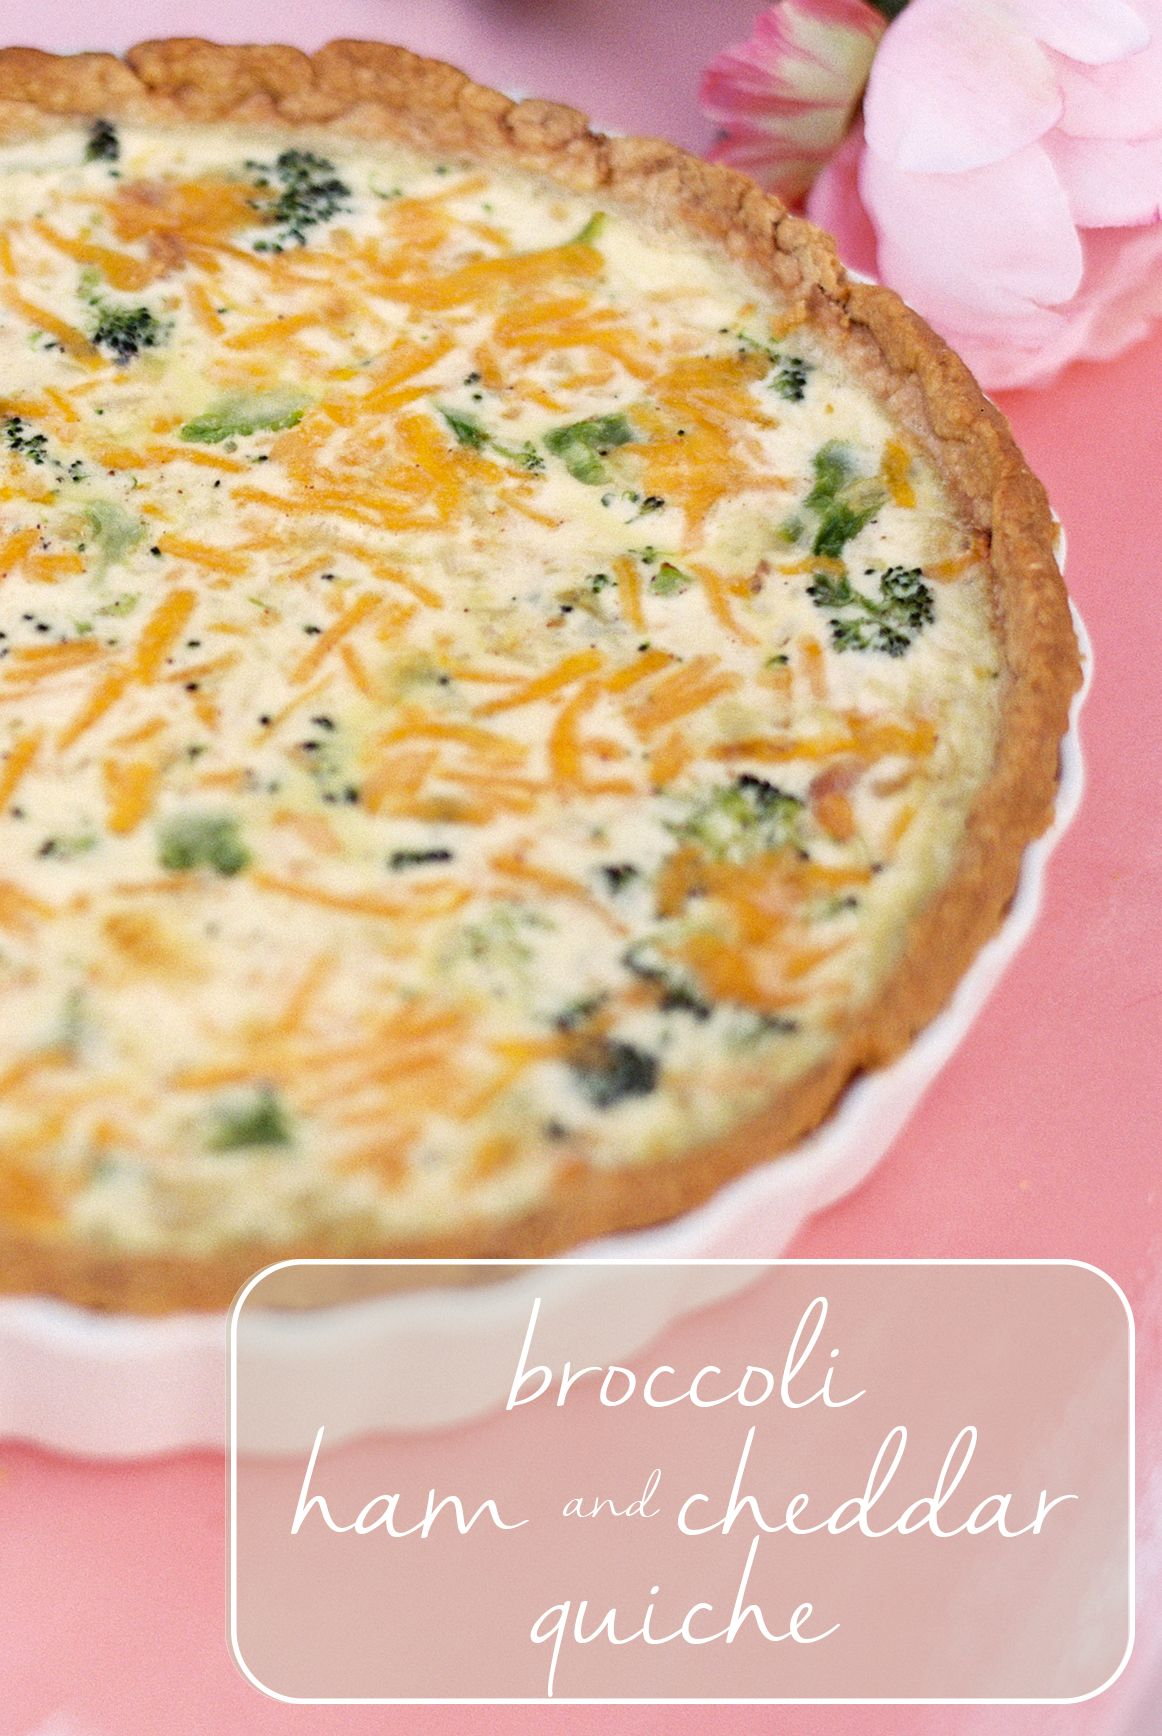 Broccoli, ham and cheddar quiche is surprisingly easy to make. Al Roker shares his tasty recipe that will feed a crowd.